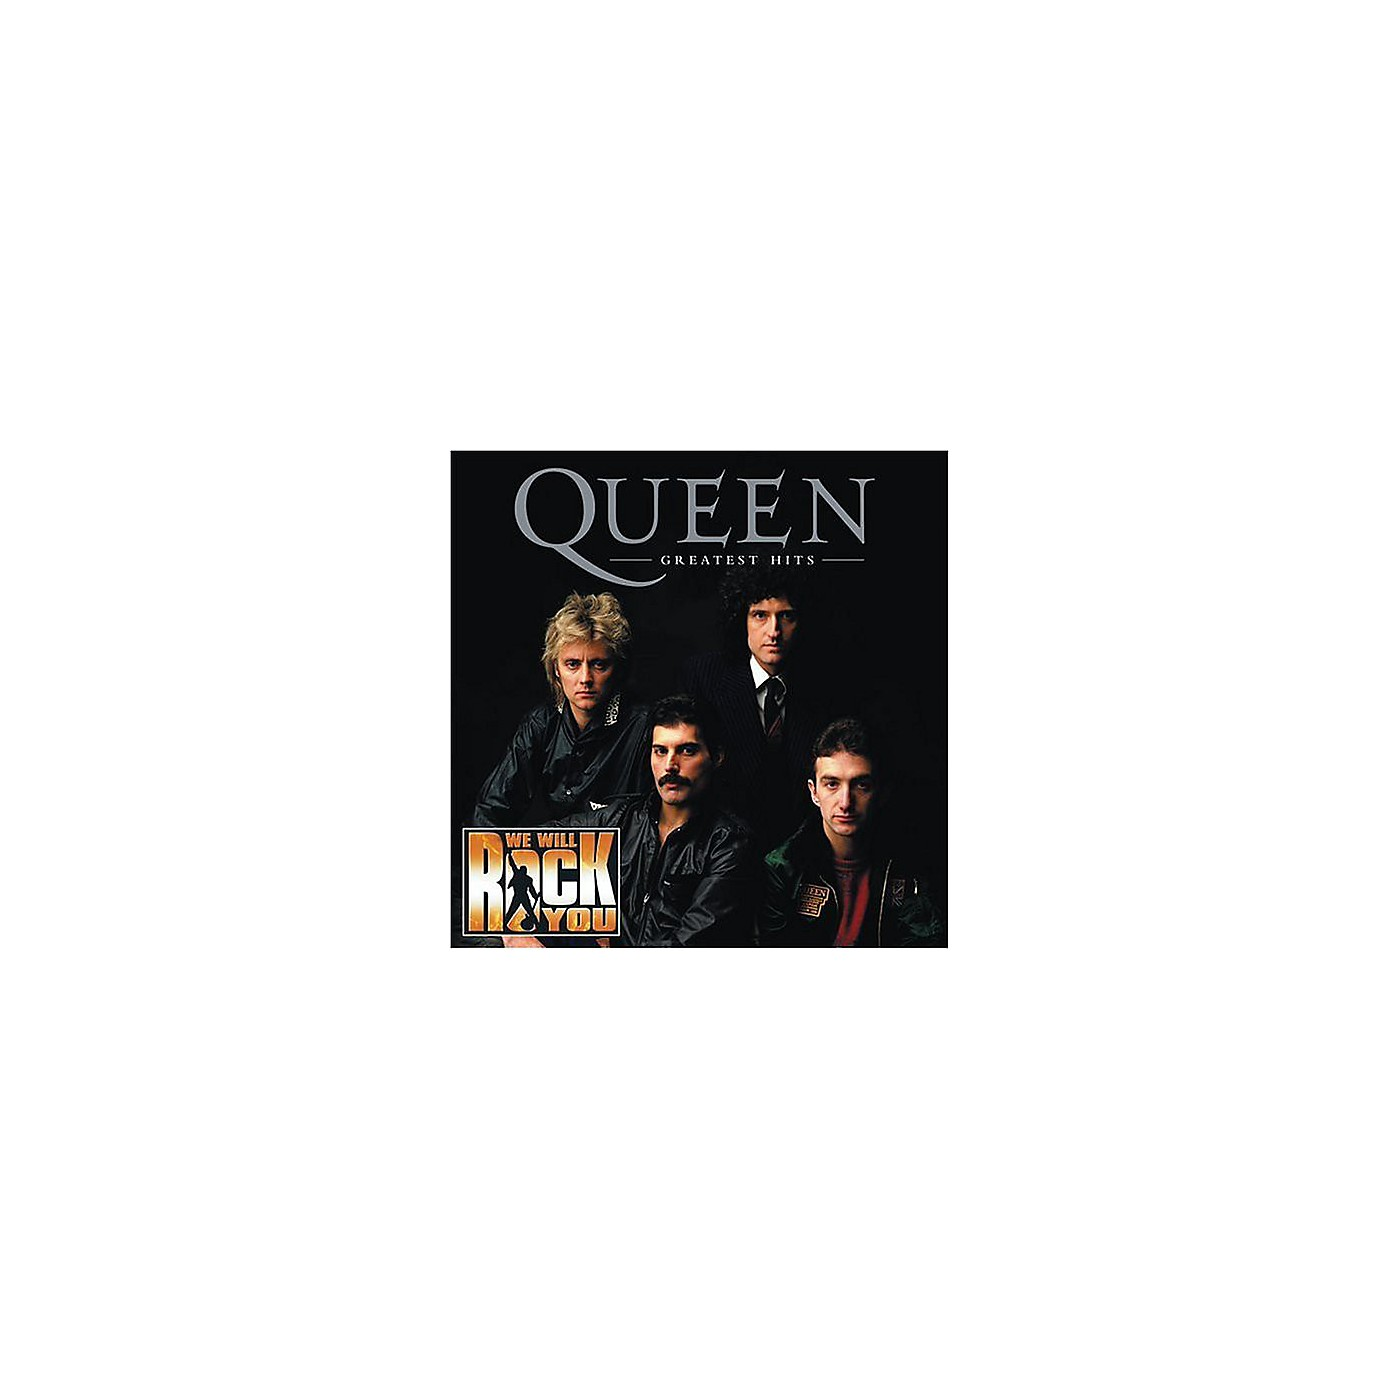 Alliance Queen - Greatest Hits: We Will Rock You Edition (CD) thumbnail